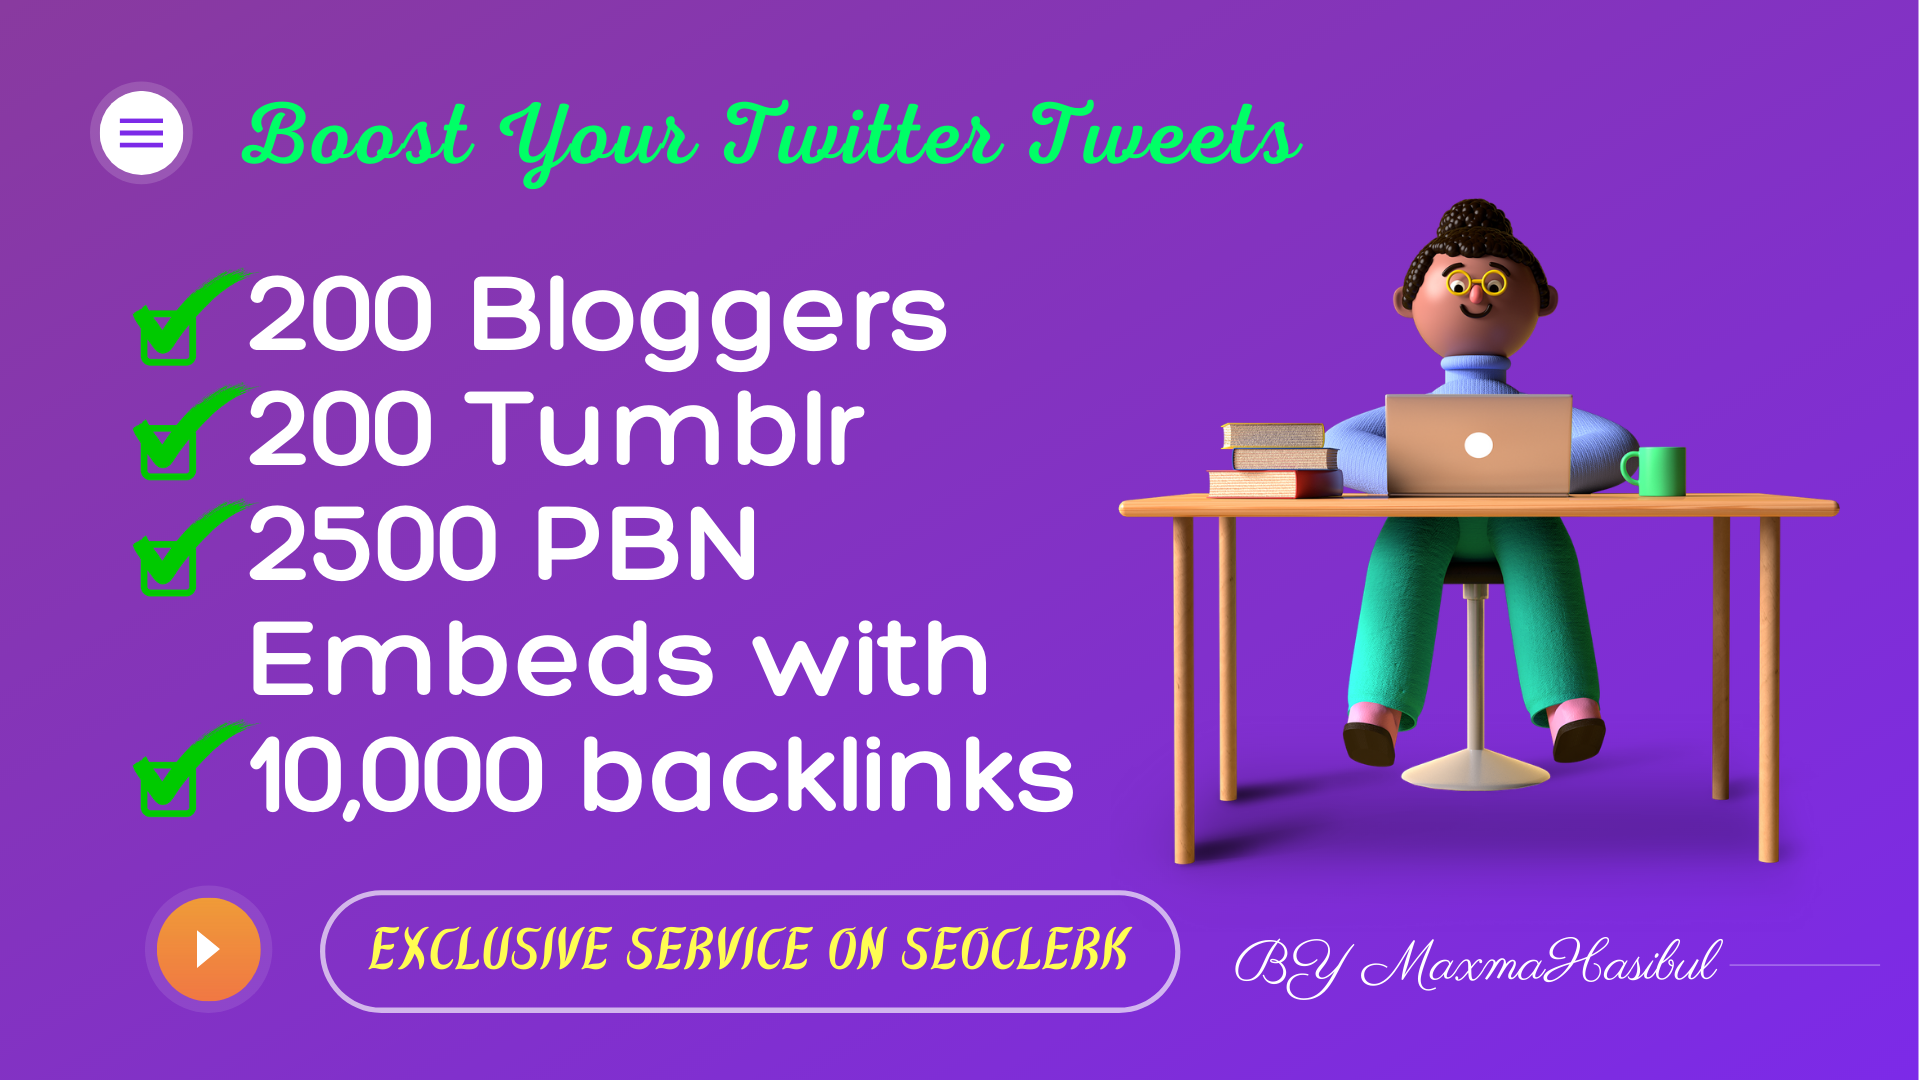 Twitter Tweet Embeds on 200 Blogger,  200 Tumblr,  2500 PBN Blog Embeds with 10,000 Backlinks